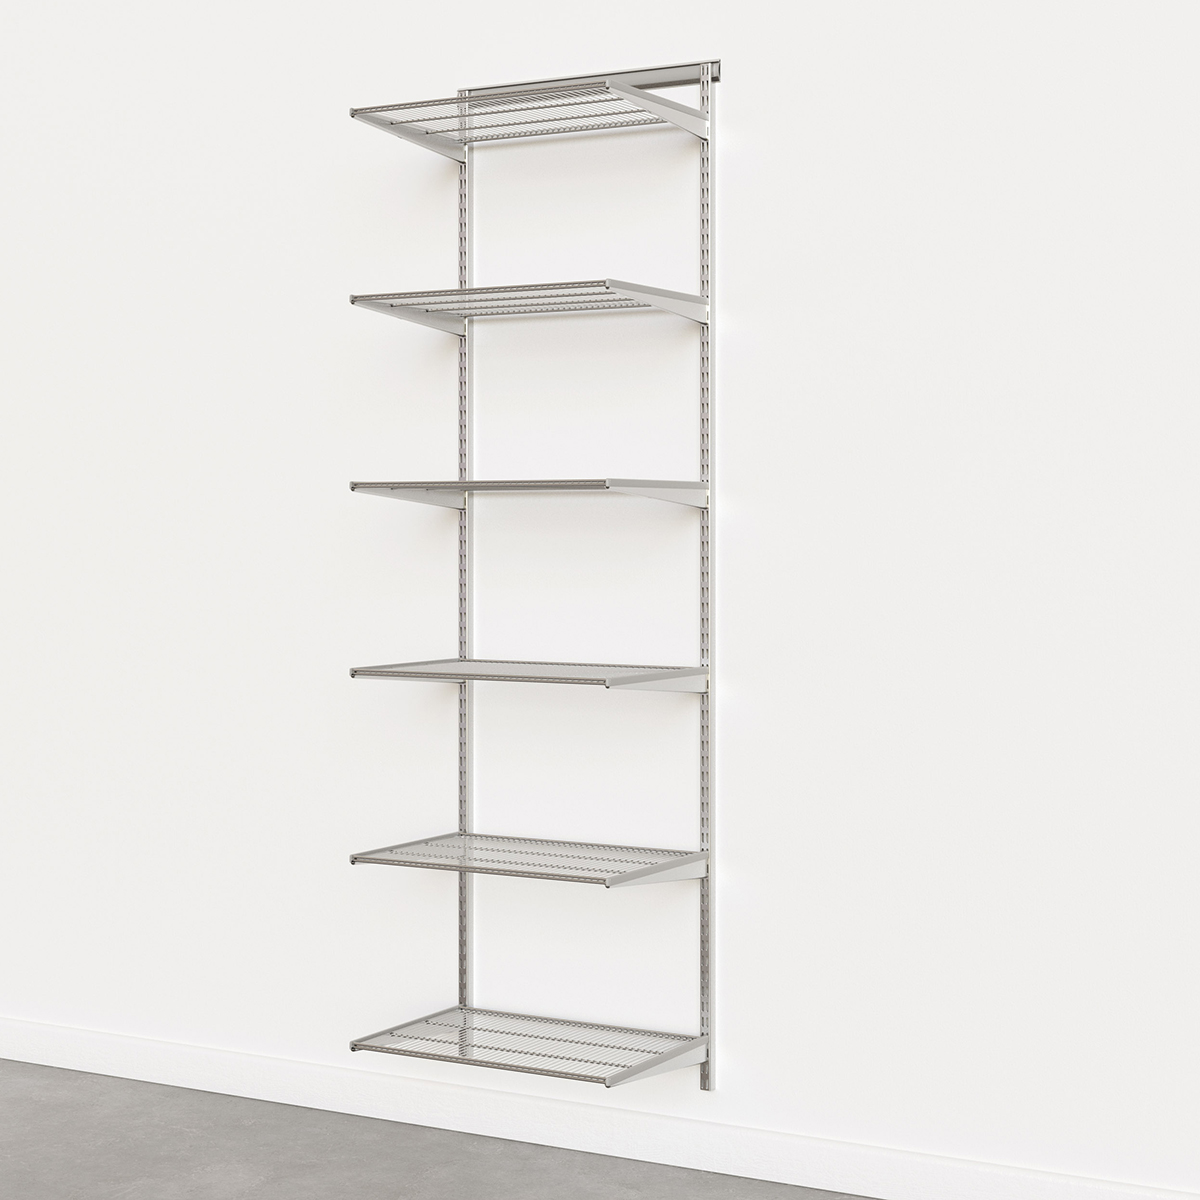 Elfa Classic Platinum 2'  Basic Shelving Units for Anywhere